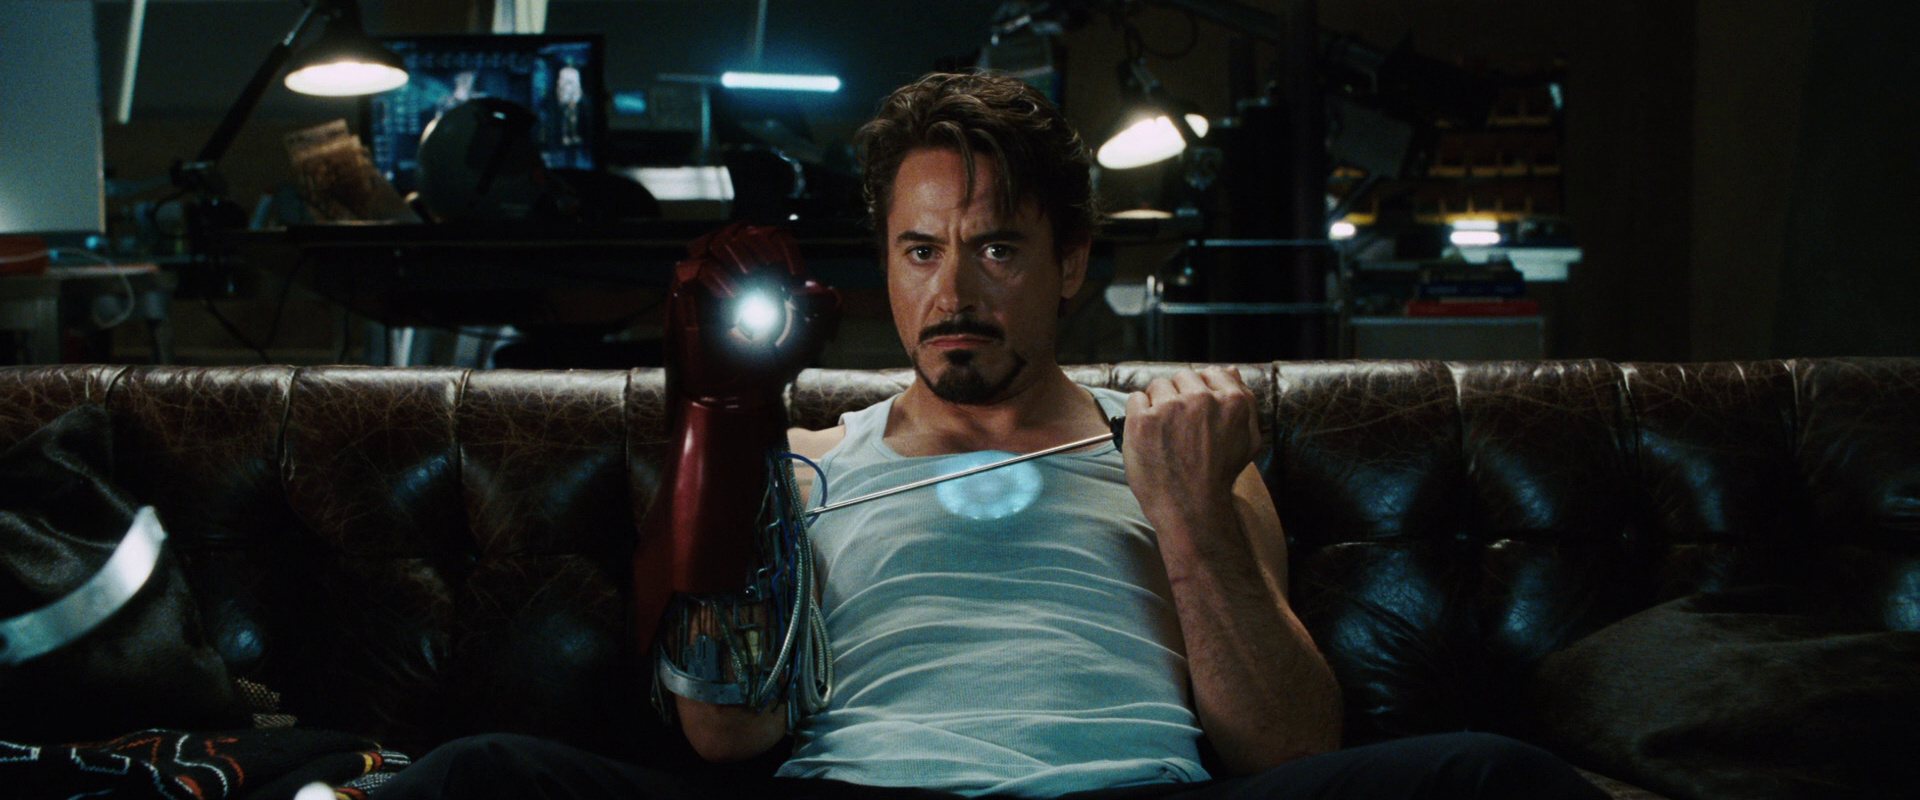 Reassessing Iron Man 2008 Back Where The Mcu All Began Popcult The Obsessive Journal Of Quality Pop Culture